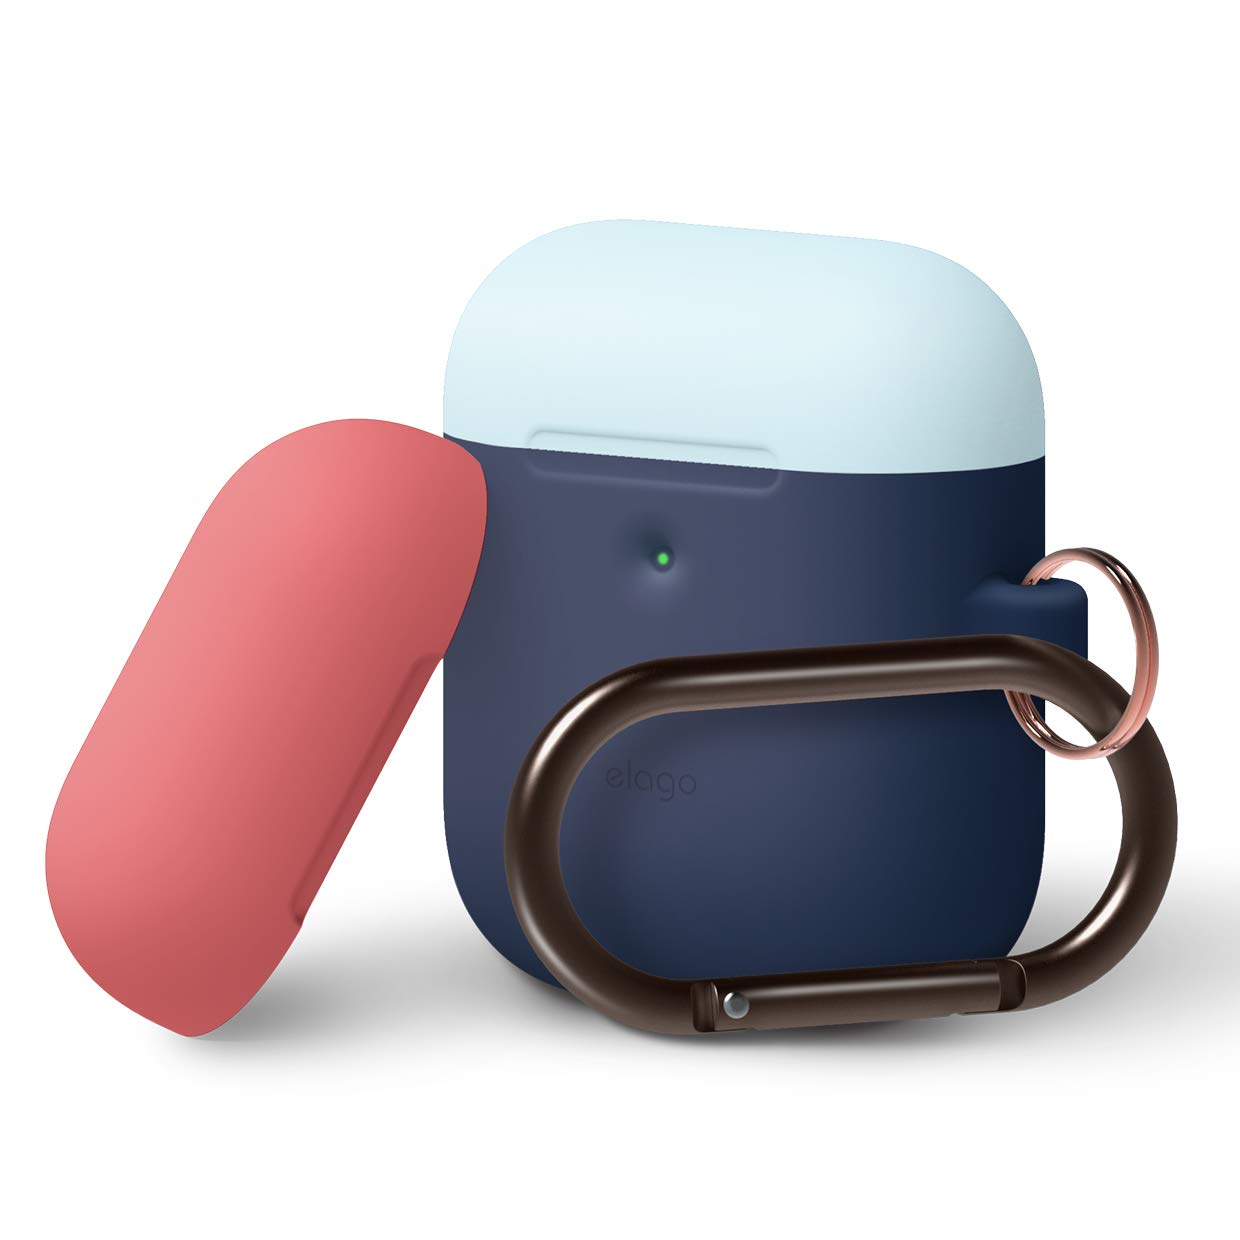 Elago Airpods Duo Hang Silicone Case - силиконов калъф за Apple Airpods 2 with Wireless Charging Case (тъмносин-светлосин)